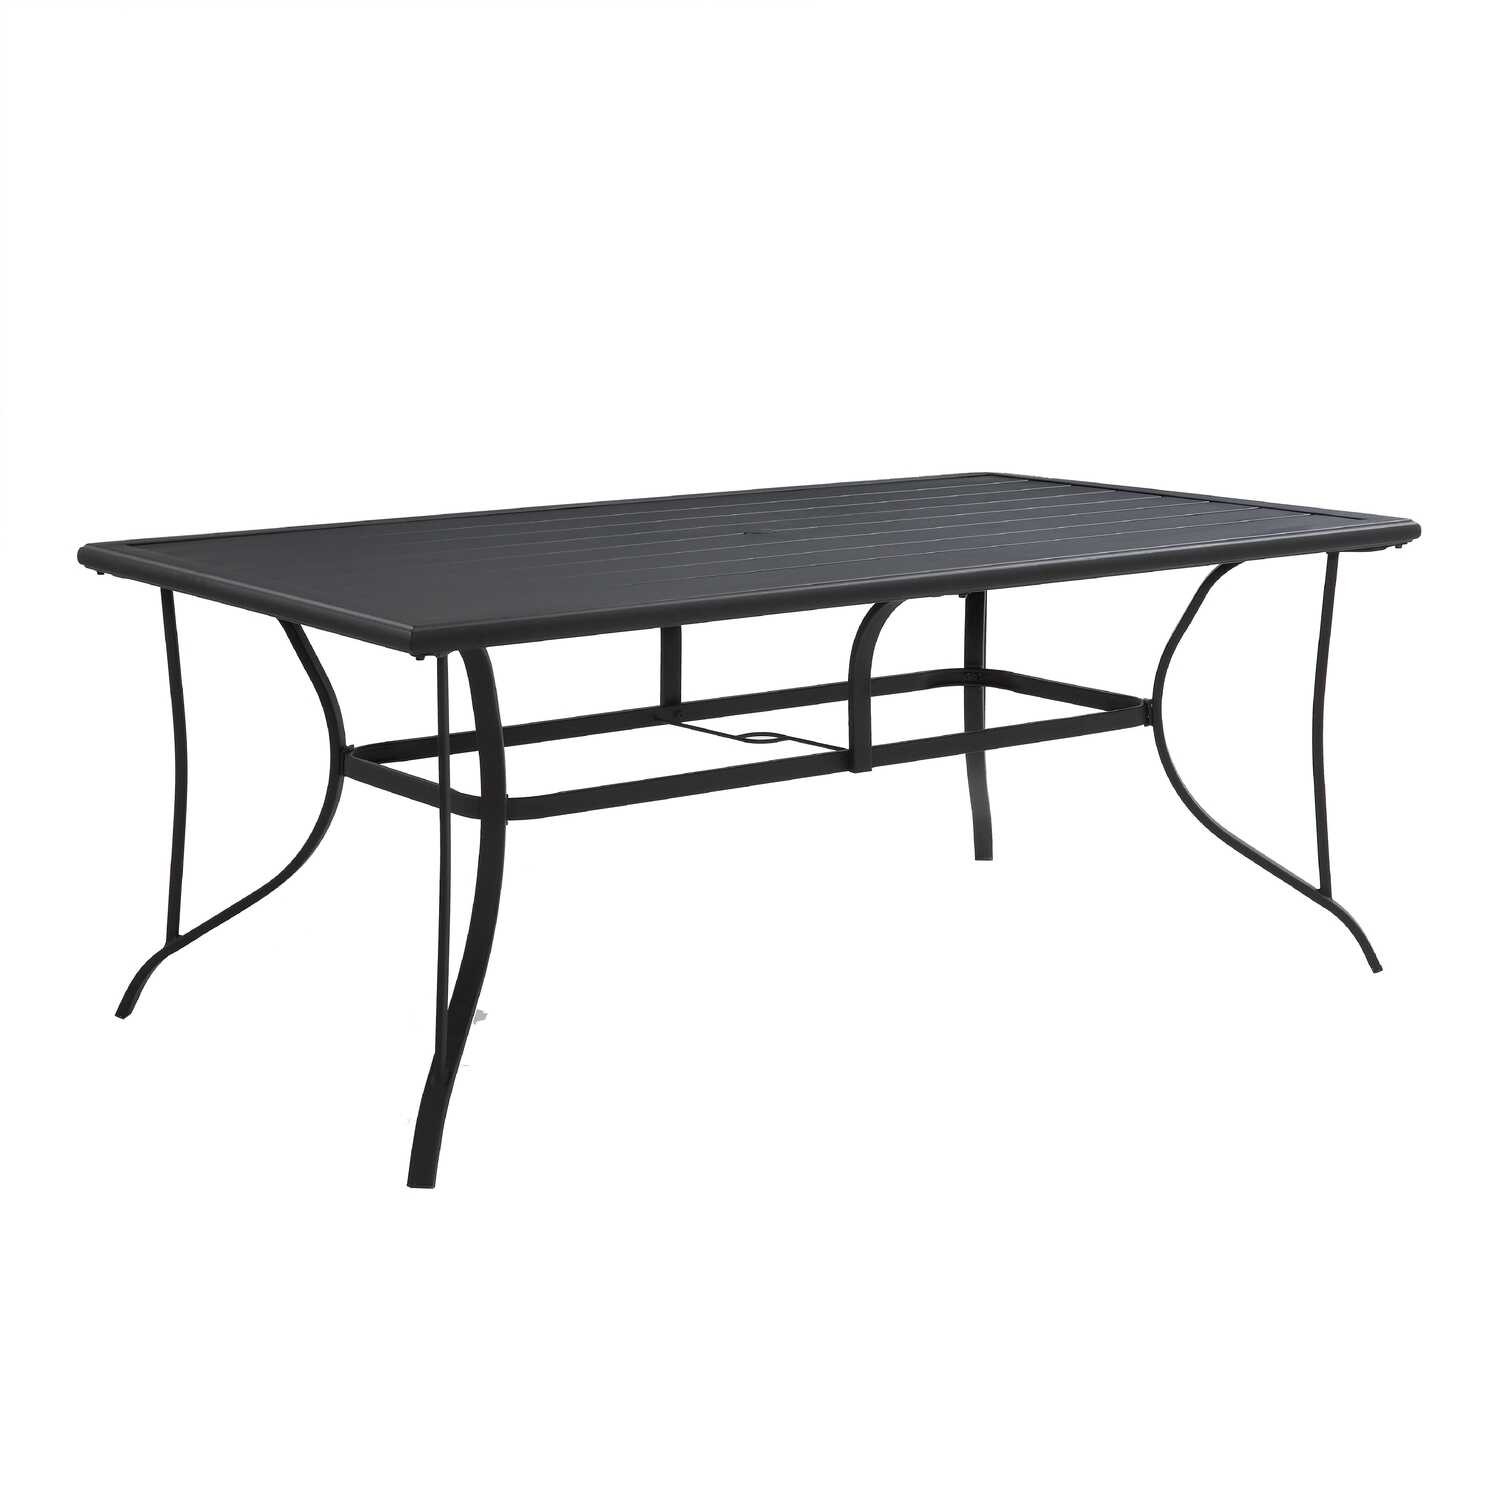 Living Accents  Black  Rectangular  Steel  Dining Table